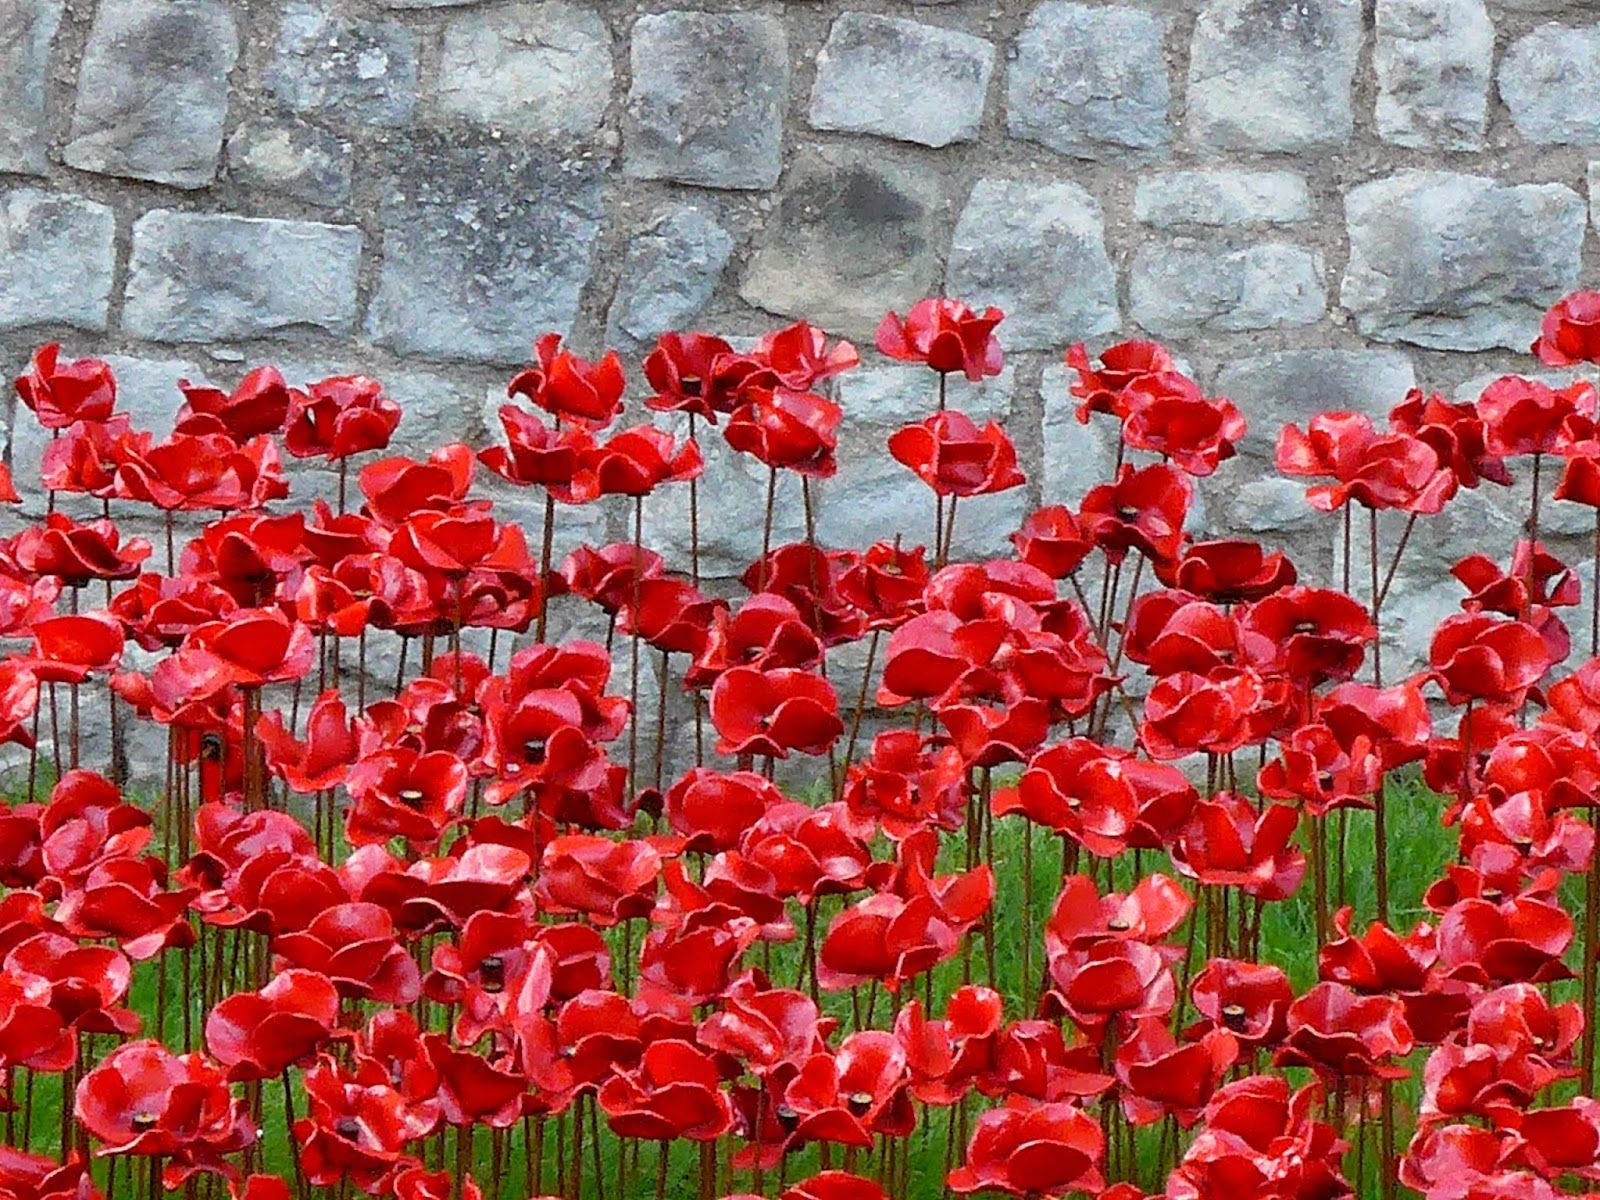 """These poppies were created by ceramic artist, Paul Cummins and is entitled """"Blood Swept Lands and Seas of Red"""" - Tower of London, 2014"""